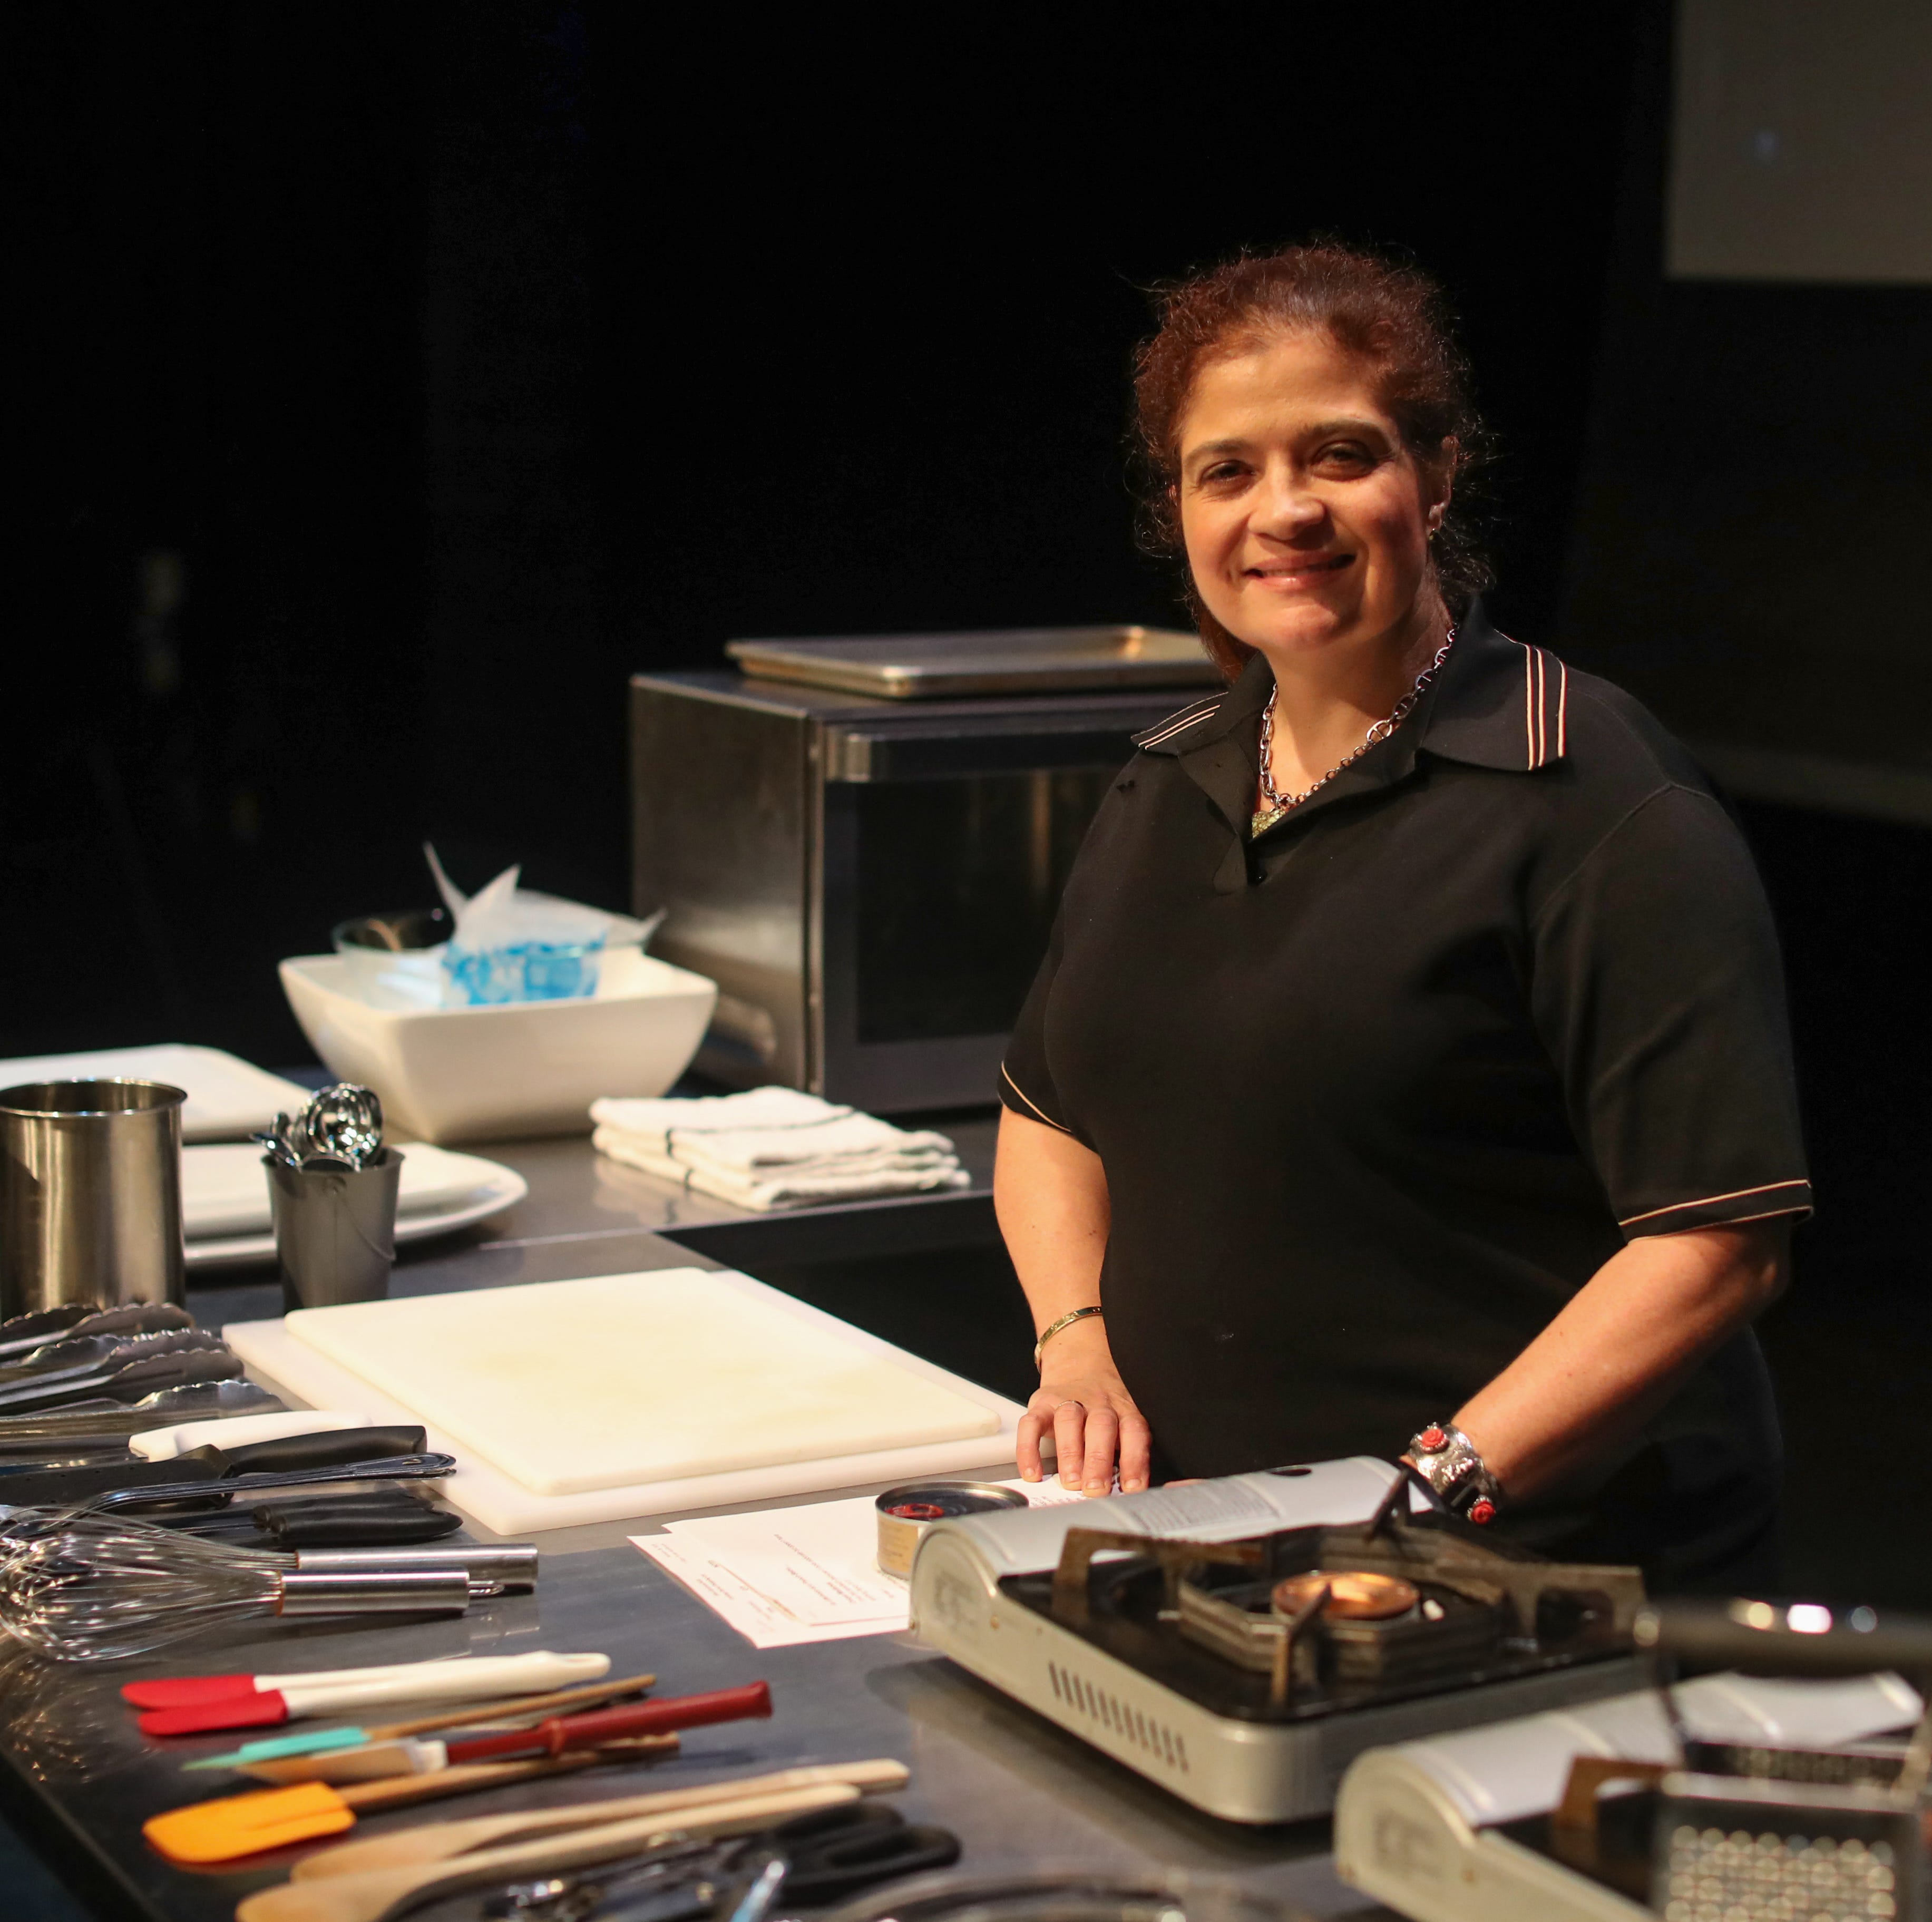 During Tallahassee visit, Iron Chef Alex Guarnaschelli talks local ingredients, home cooking